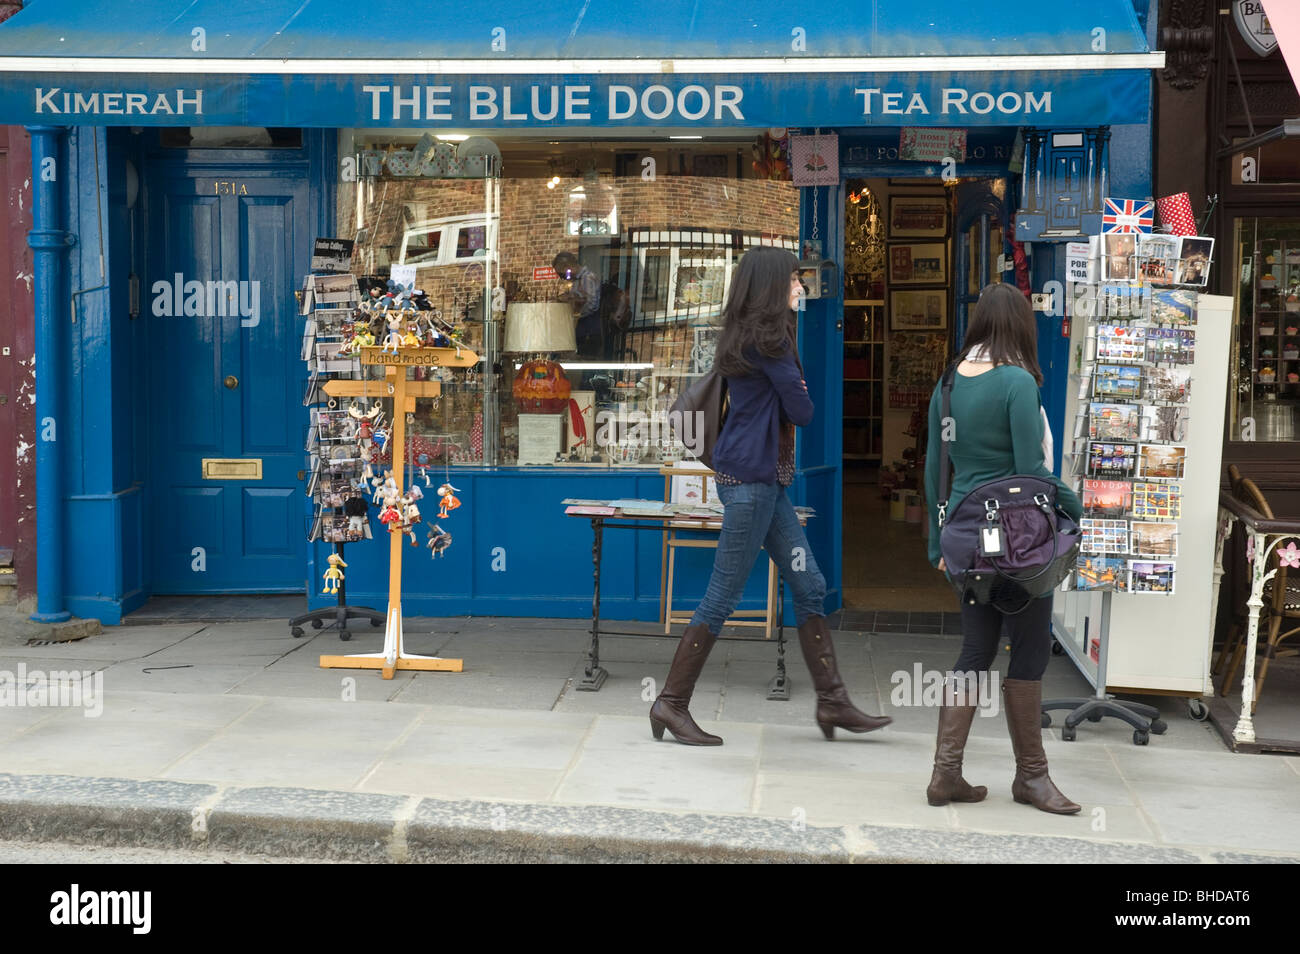 The Blue Door - A shop and tea room with passing shoppers n Notting Hill Gate London UK - Stock Image